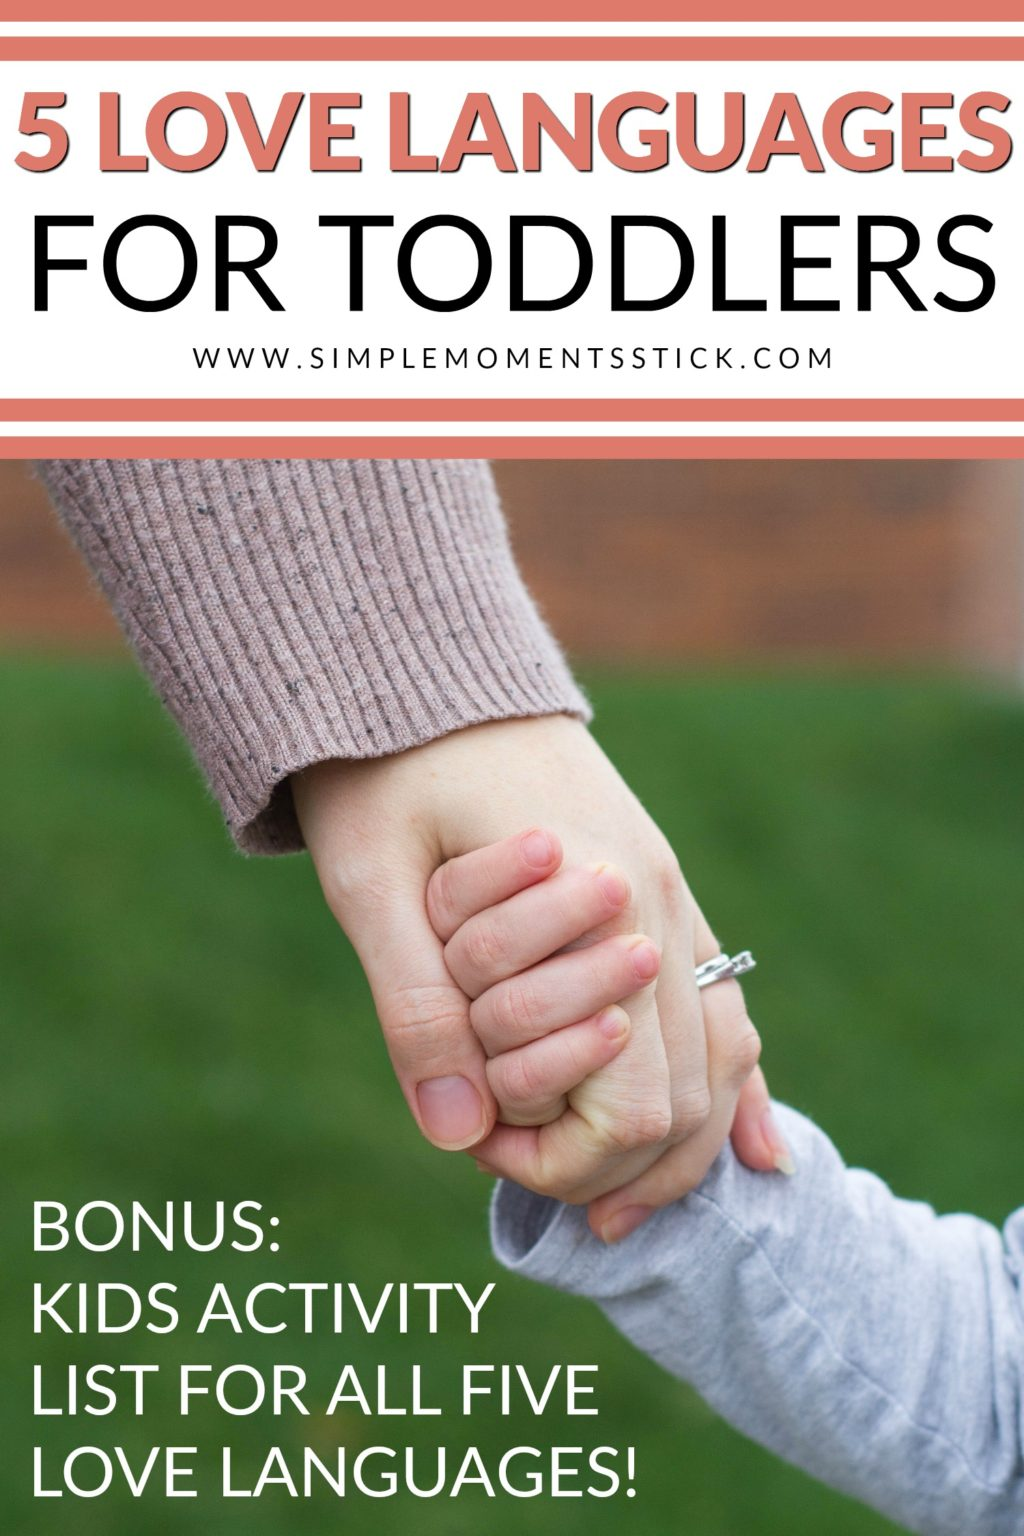 The five love languages for toddlers. Great ideas to love on toddlers with toddler love languages. Includes a free kids love language activity guide! #toddler #lovelanguages